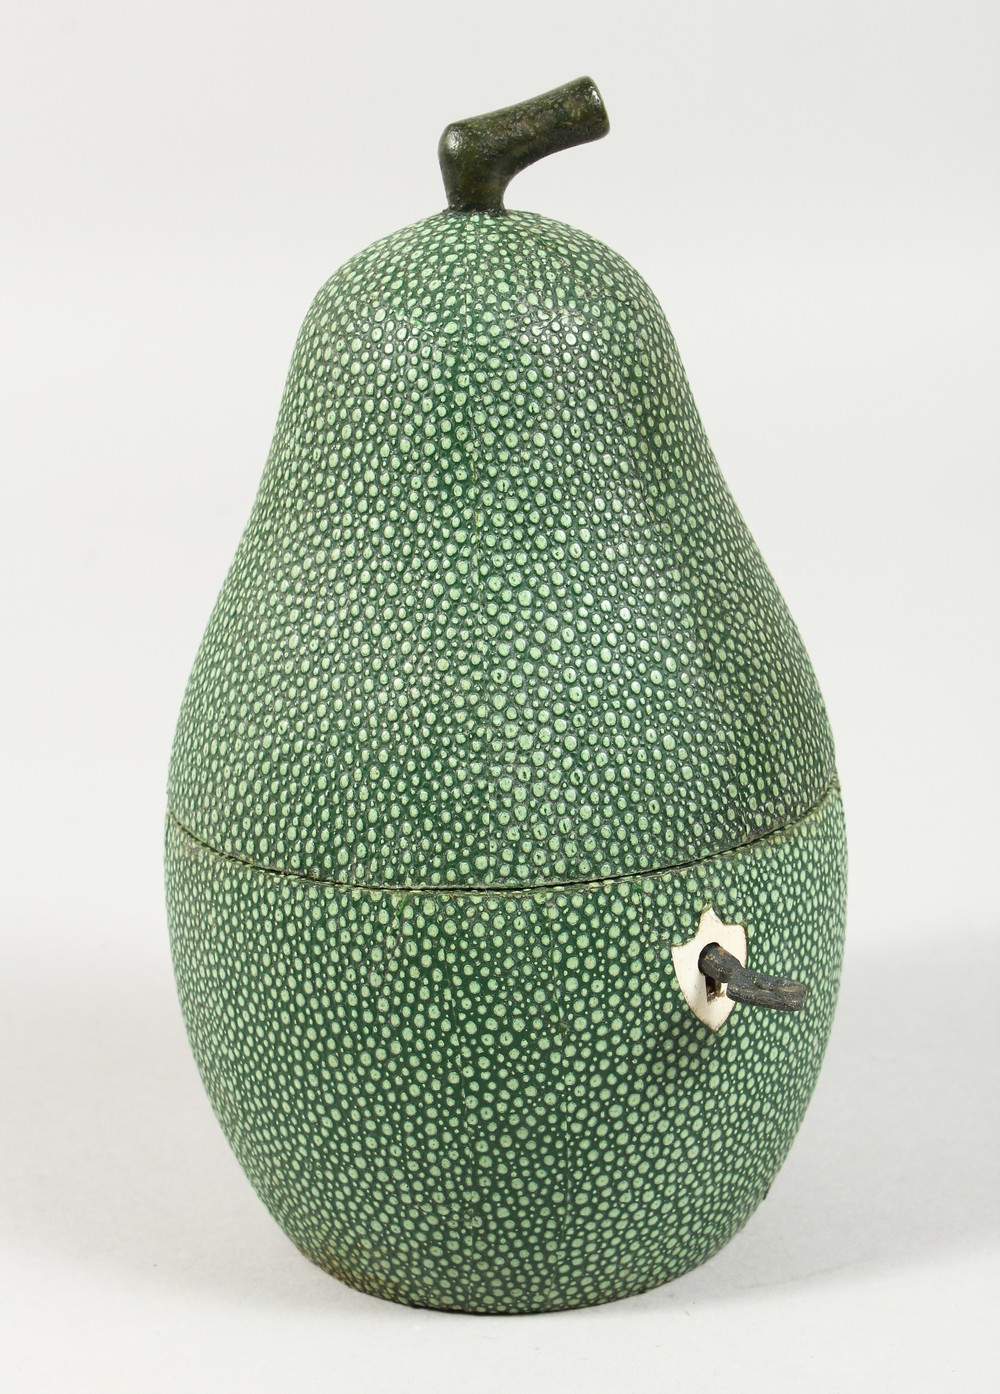 Lot 1373 - A SHAGREEN STYLE PEAR SHAPED TEA CADDY. 7ins high.